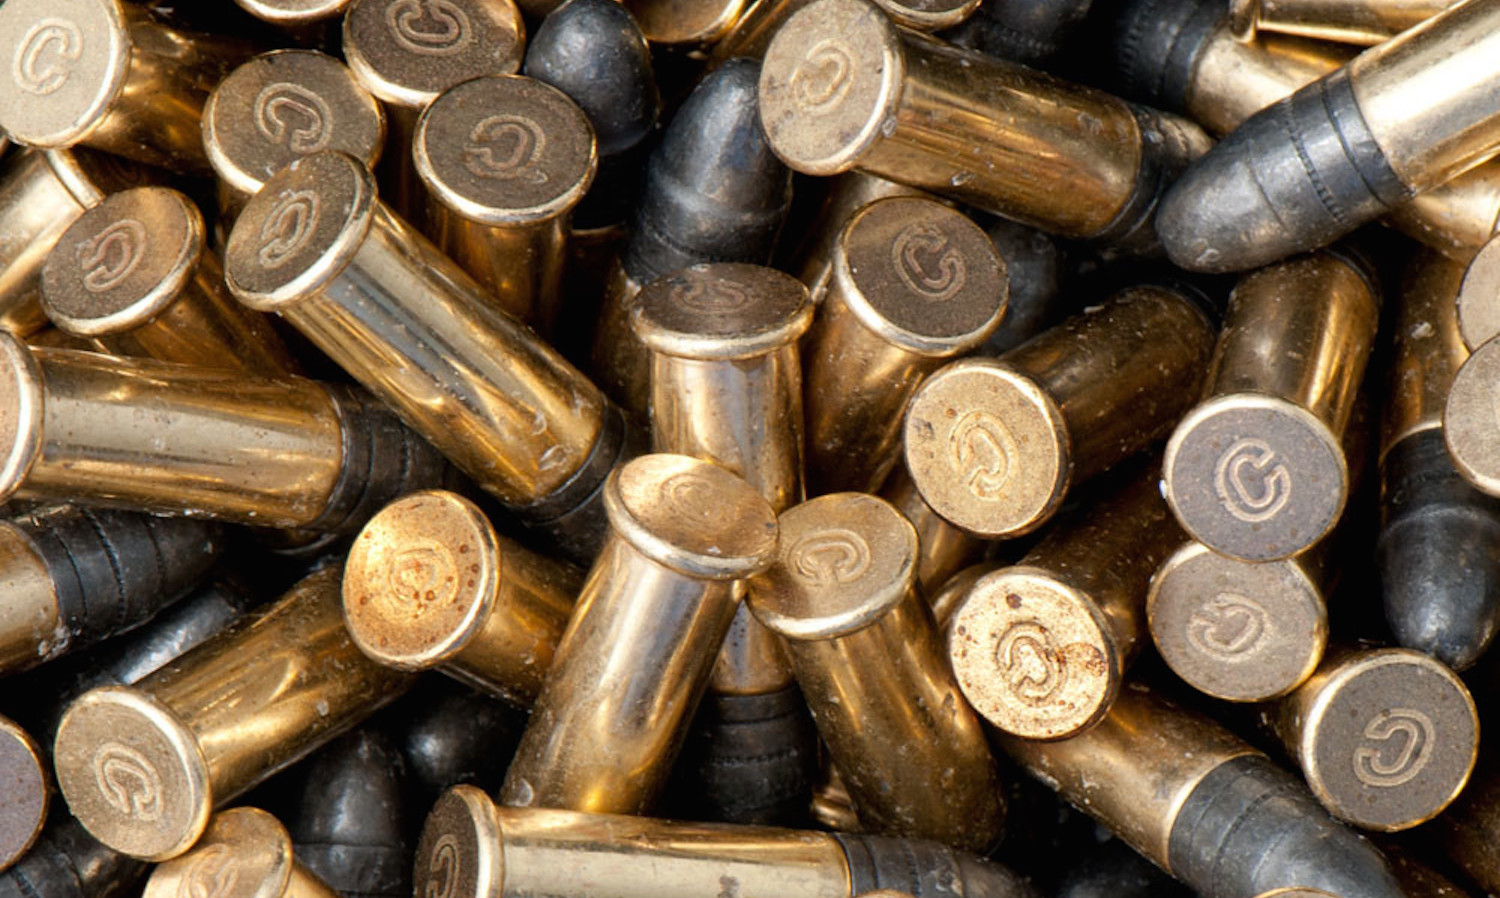 The Resurgence of Rimfire Ammo, The World's Best Training Tool